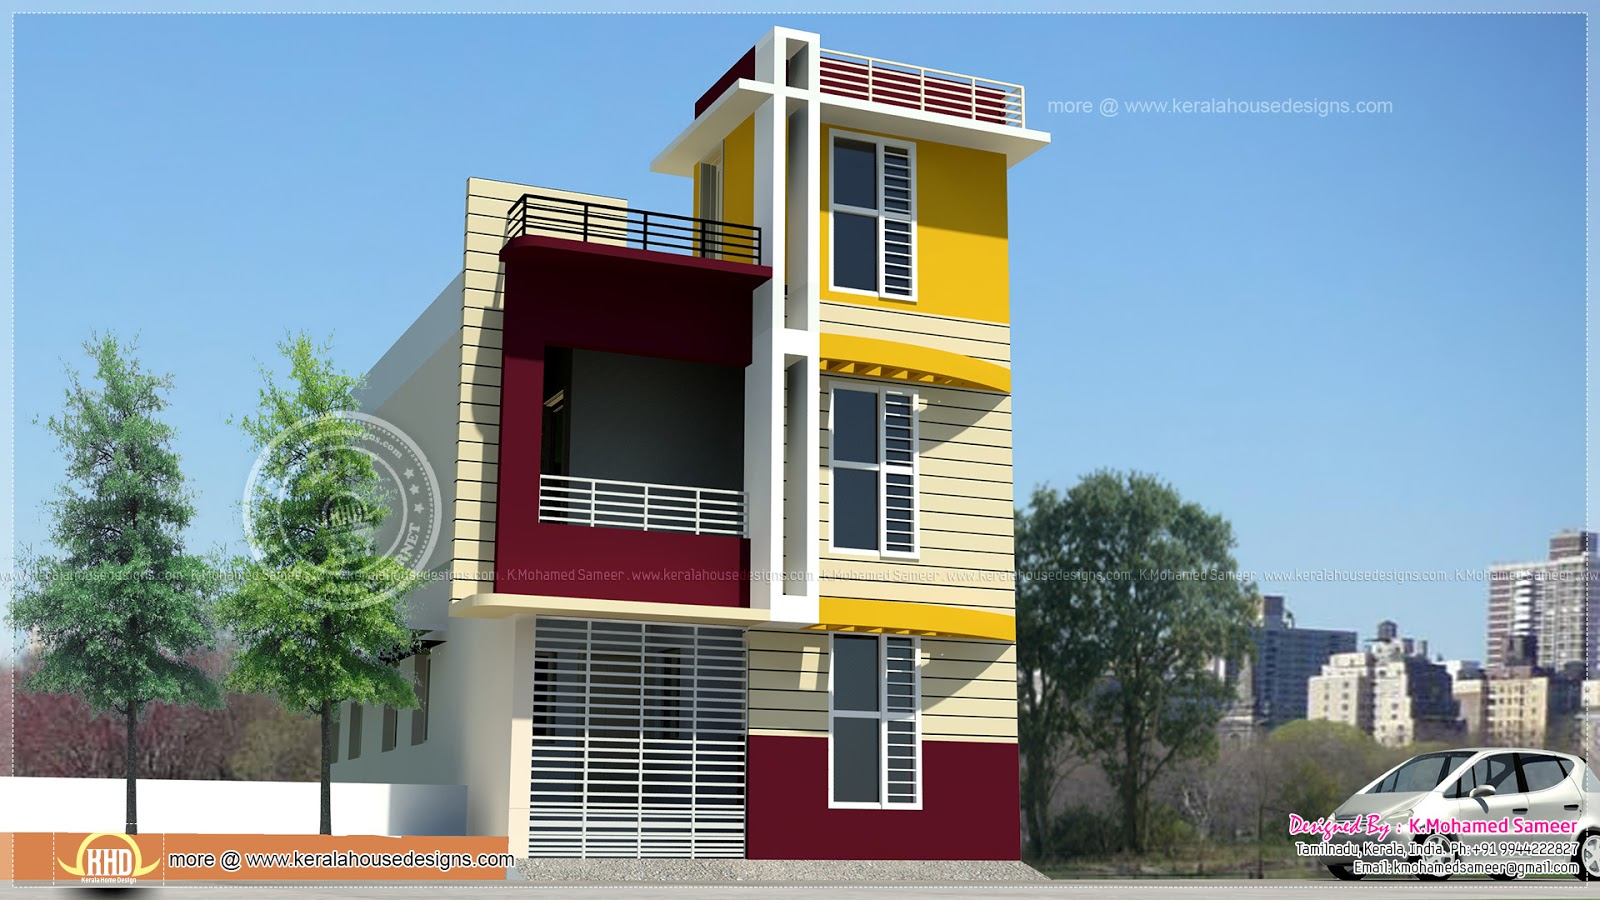 Tamilnadu style 3 storey house elevation kerala home for Single floor house designs tamilnadu